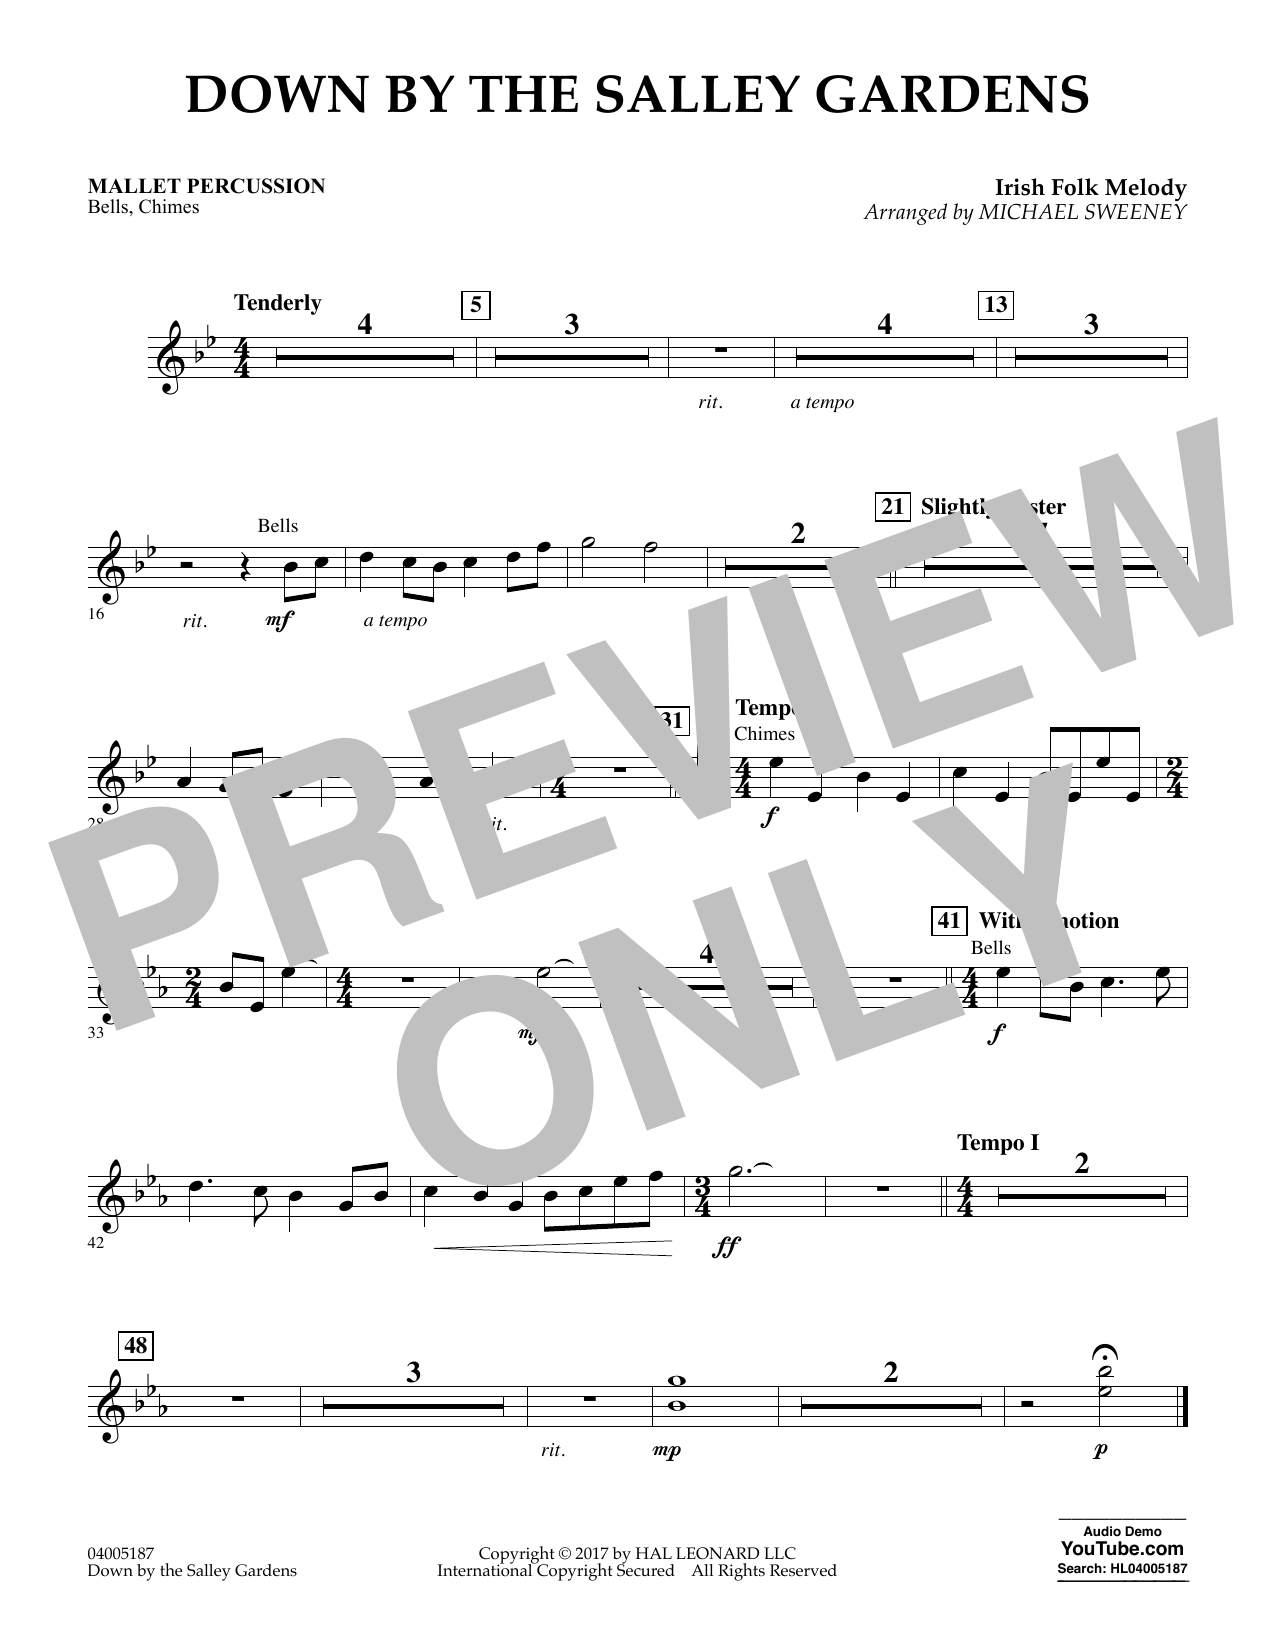 Down by the Salley Gardens - Mallet Percussion (Flex-Band)